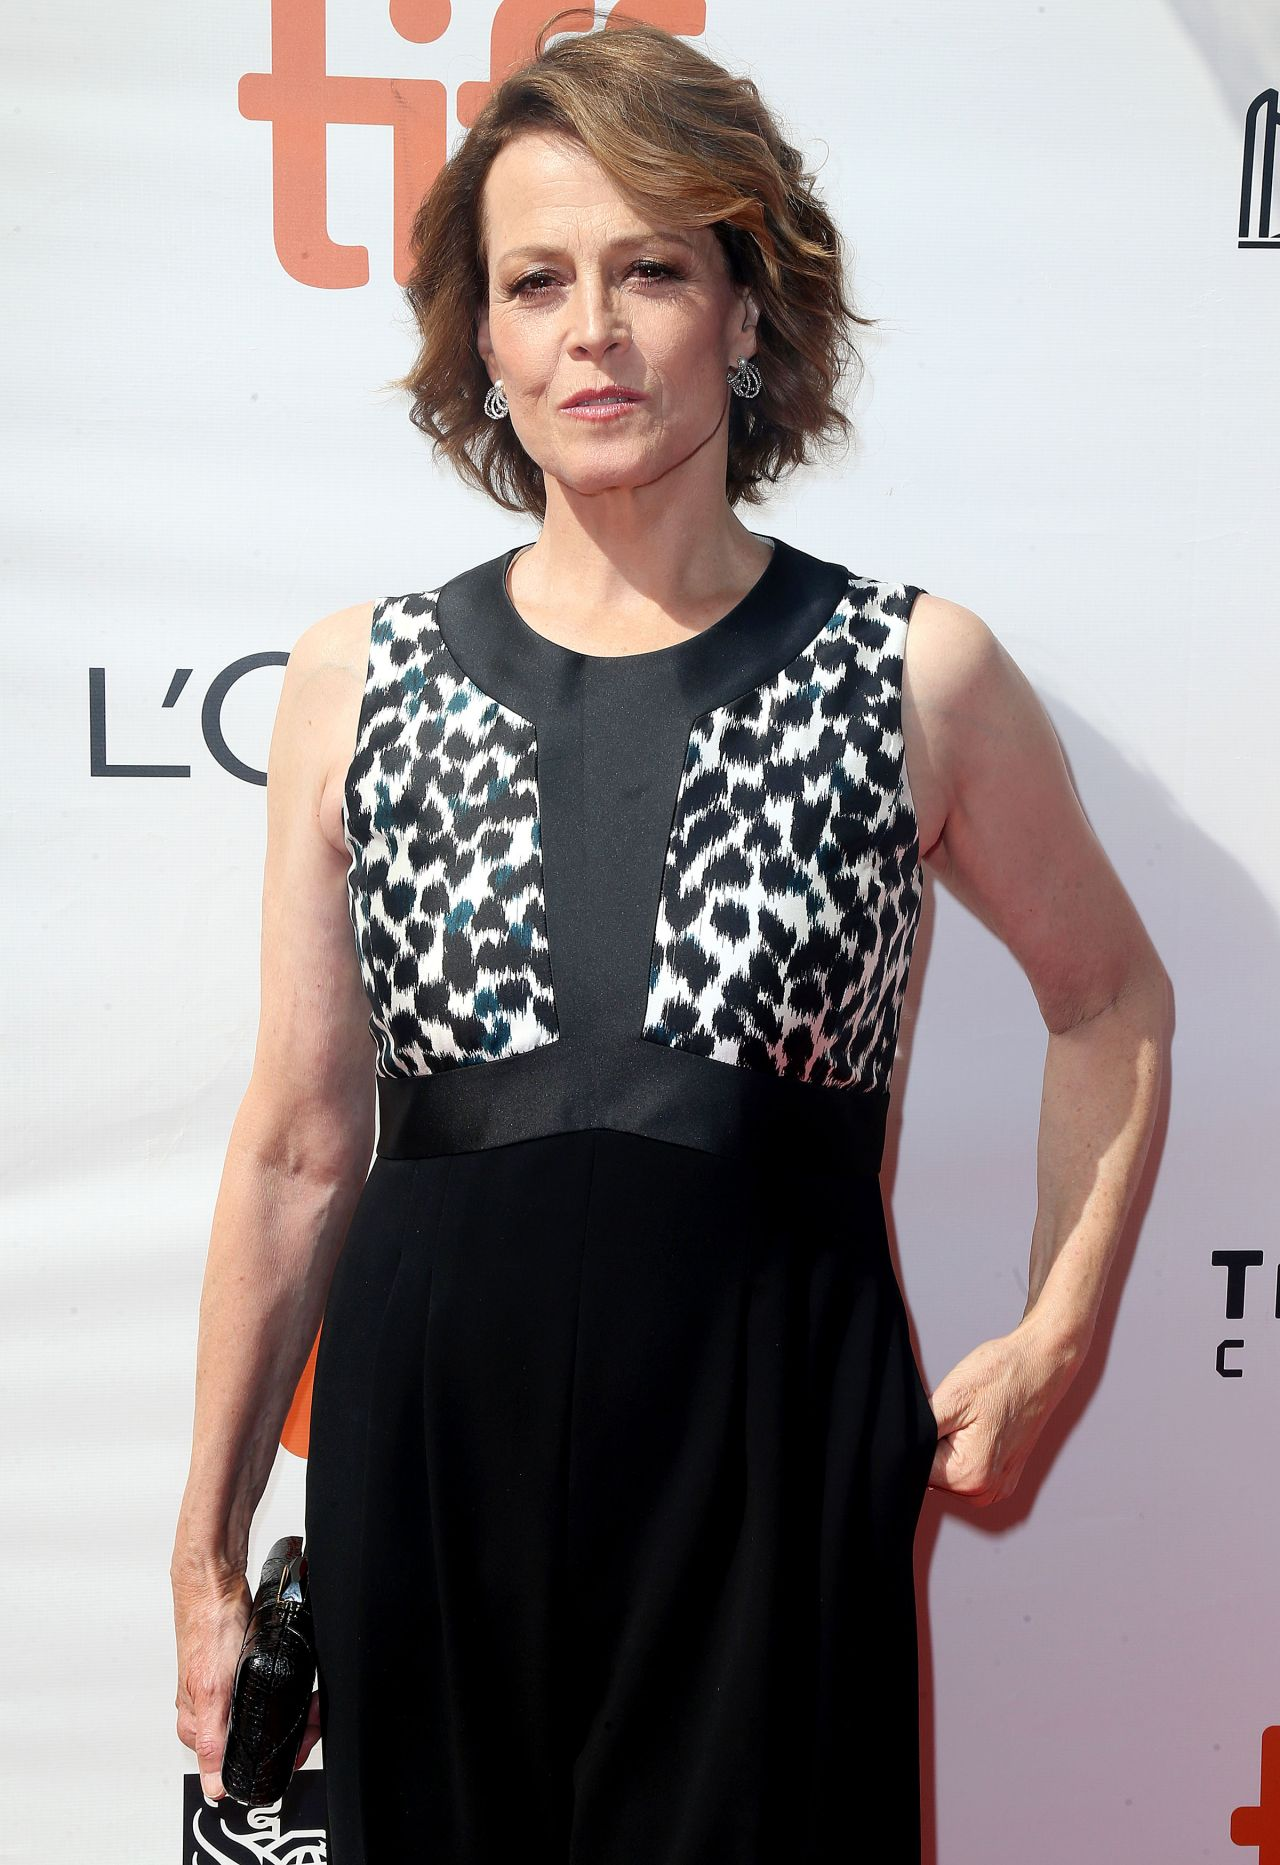 Sigourney Weaver Filmography And Biography On Movies Film: 'A Monster Calls' Premiere